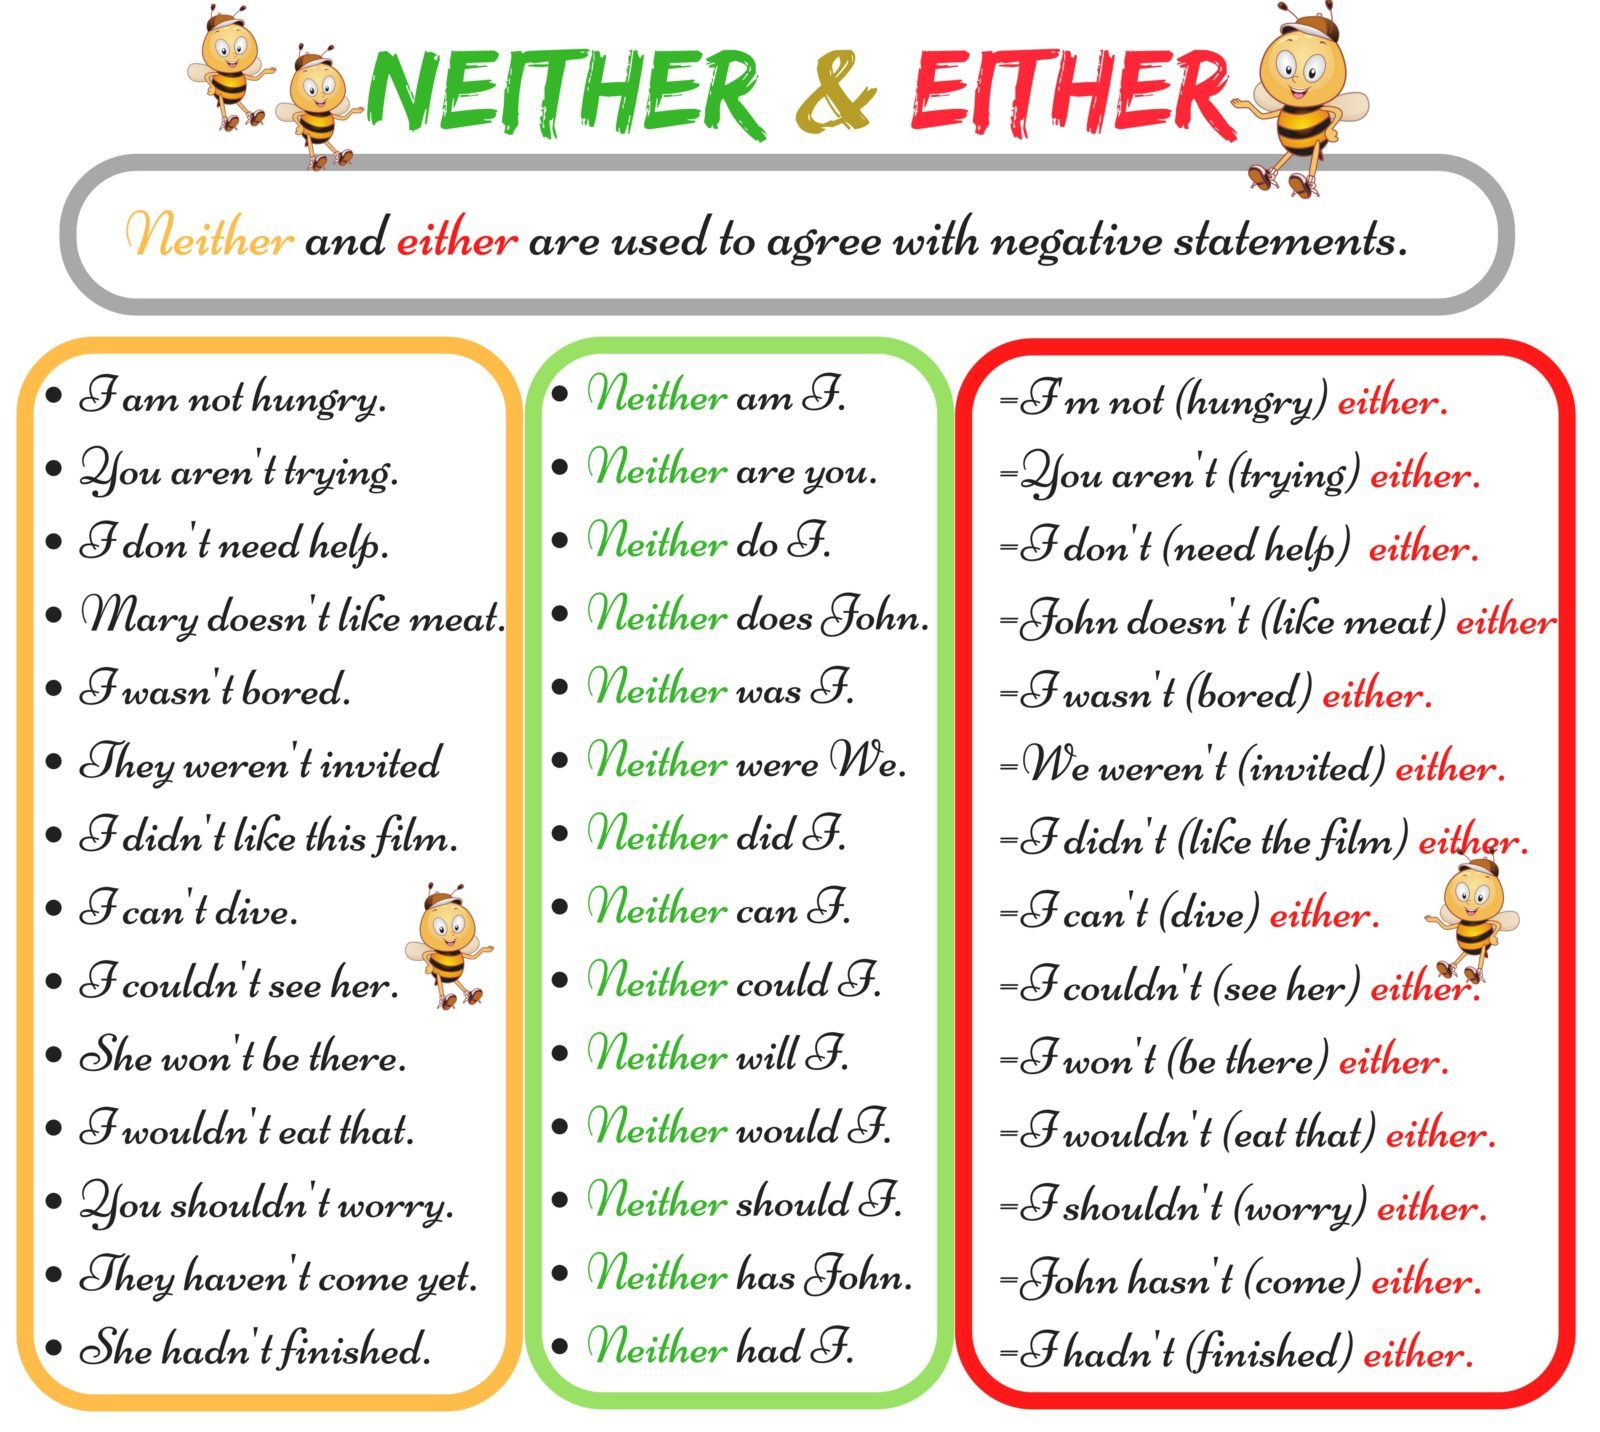 Either vs Neither: When to Use Neither vs Either (with Useful Examples) 1